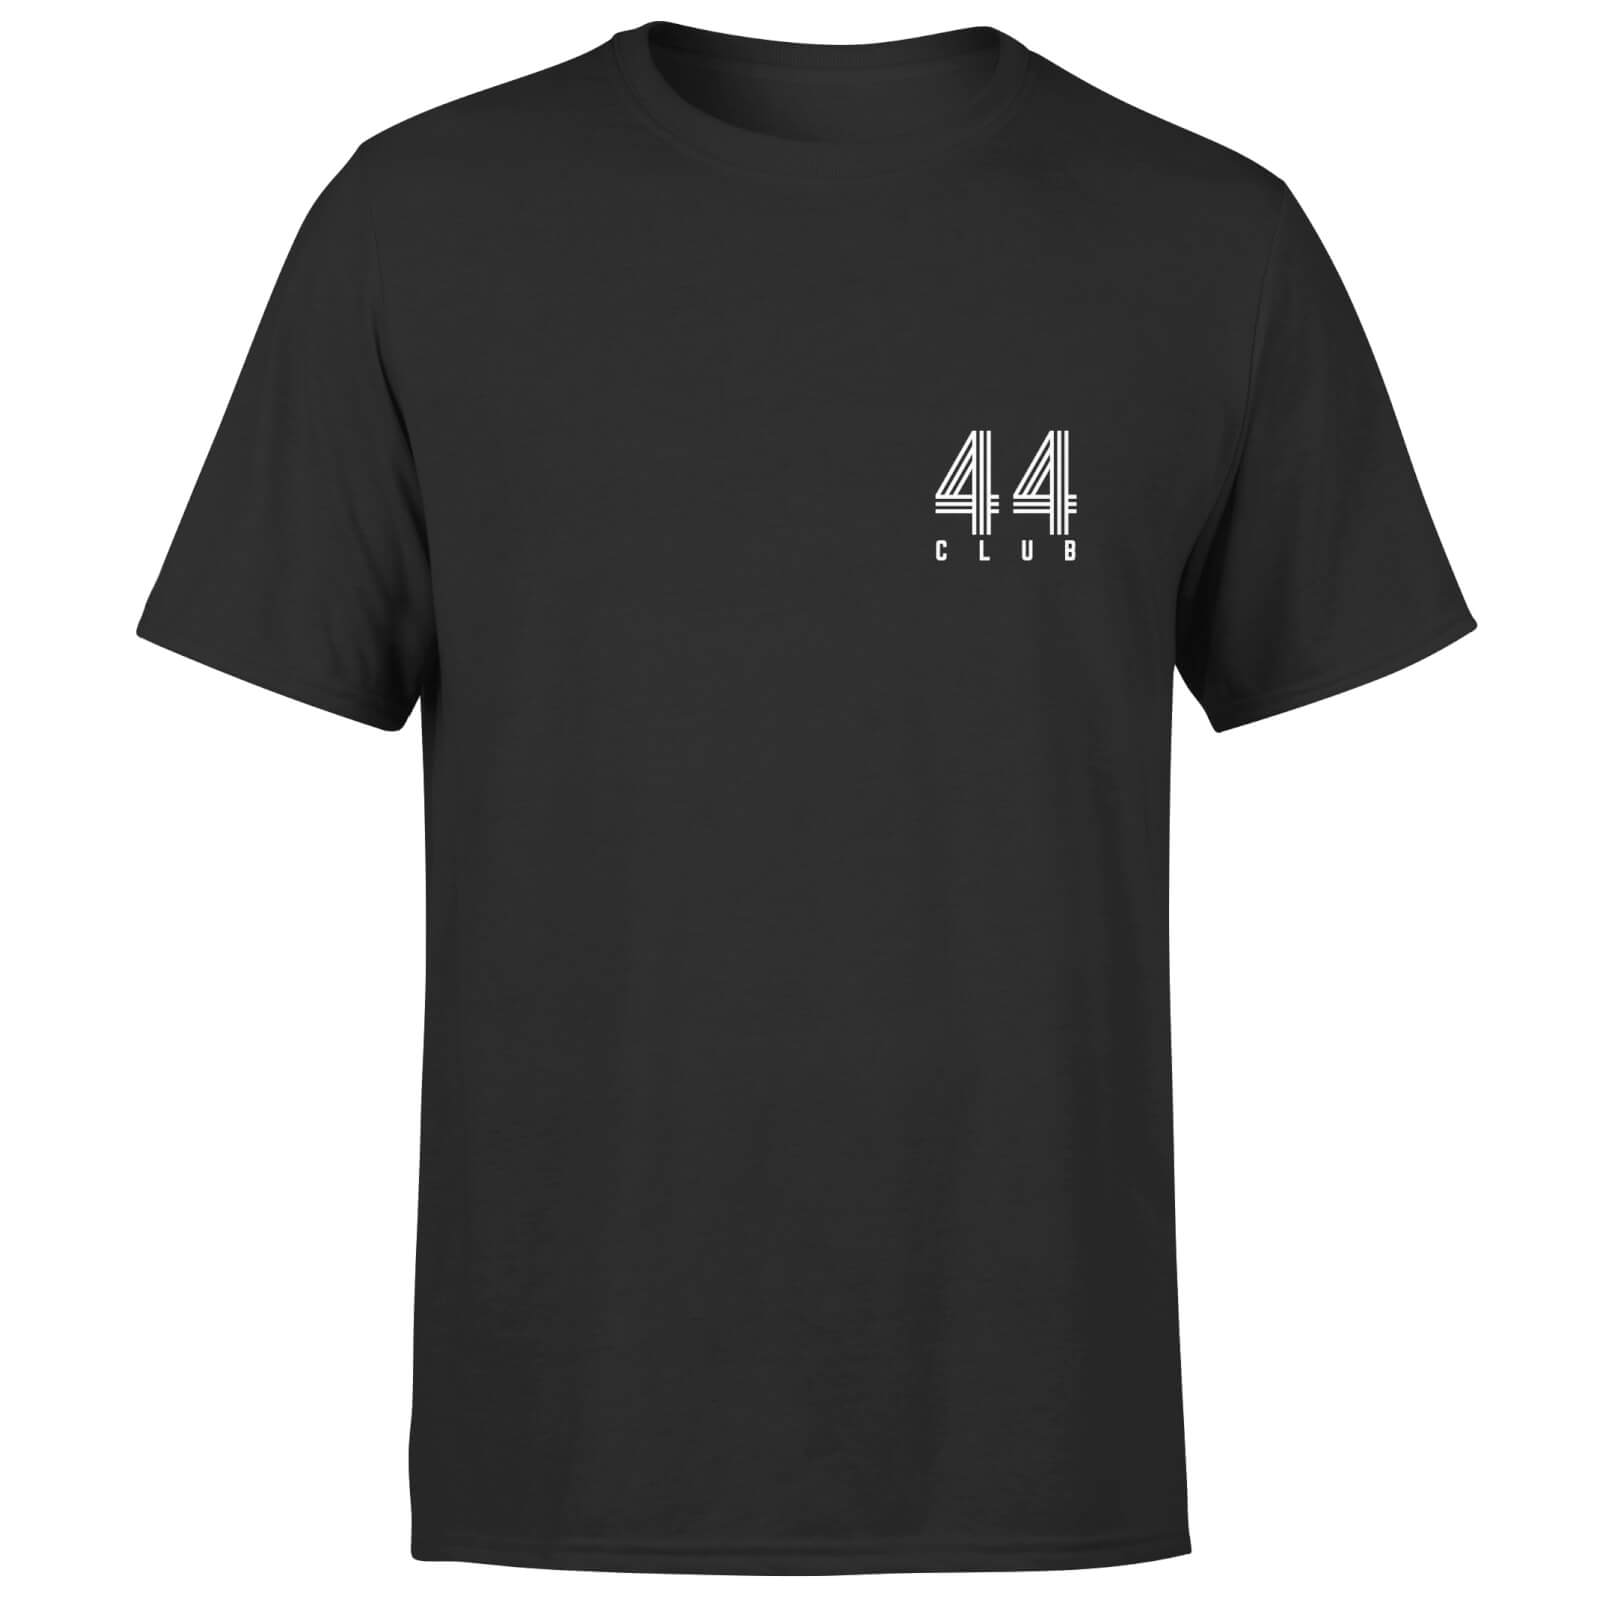 How Ridiculous 44 Club T-Shirt - Black